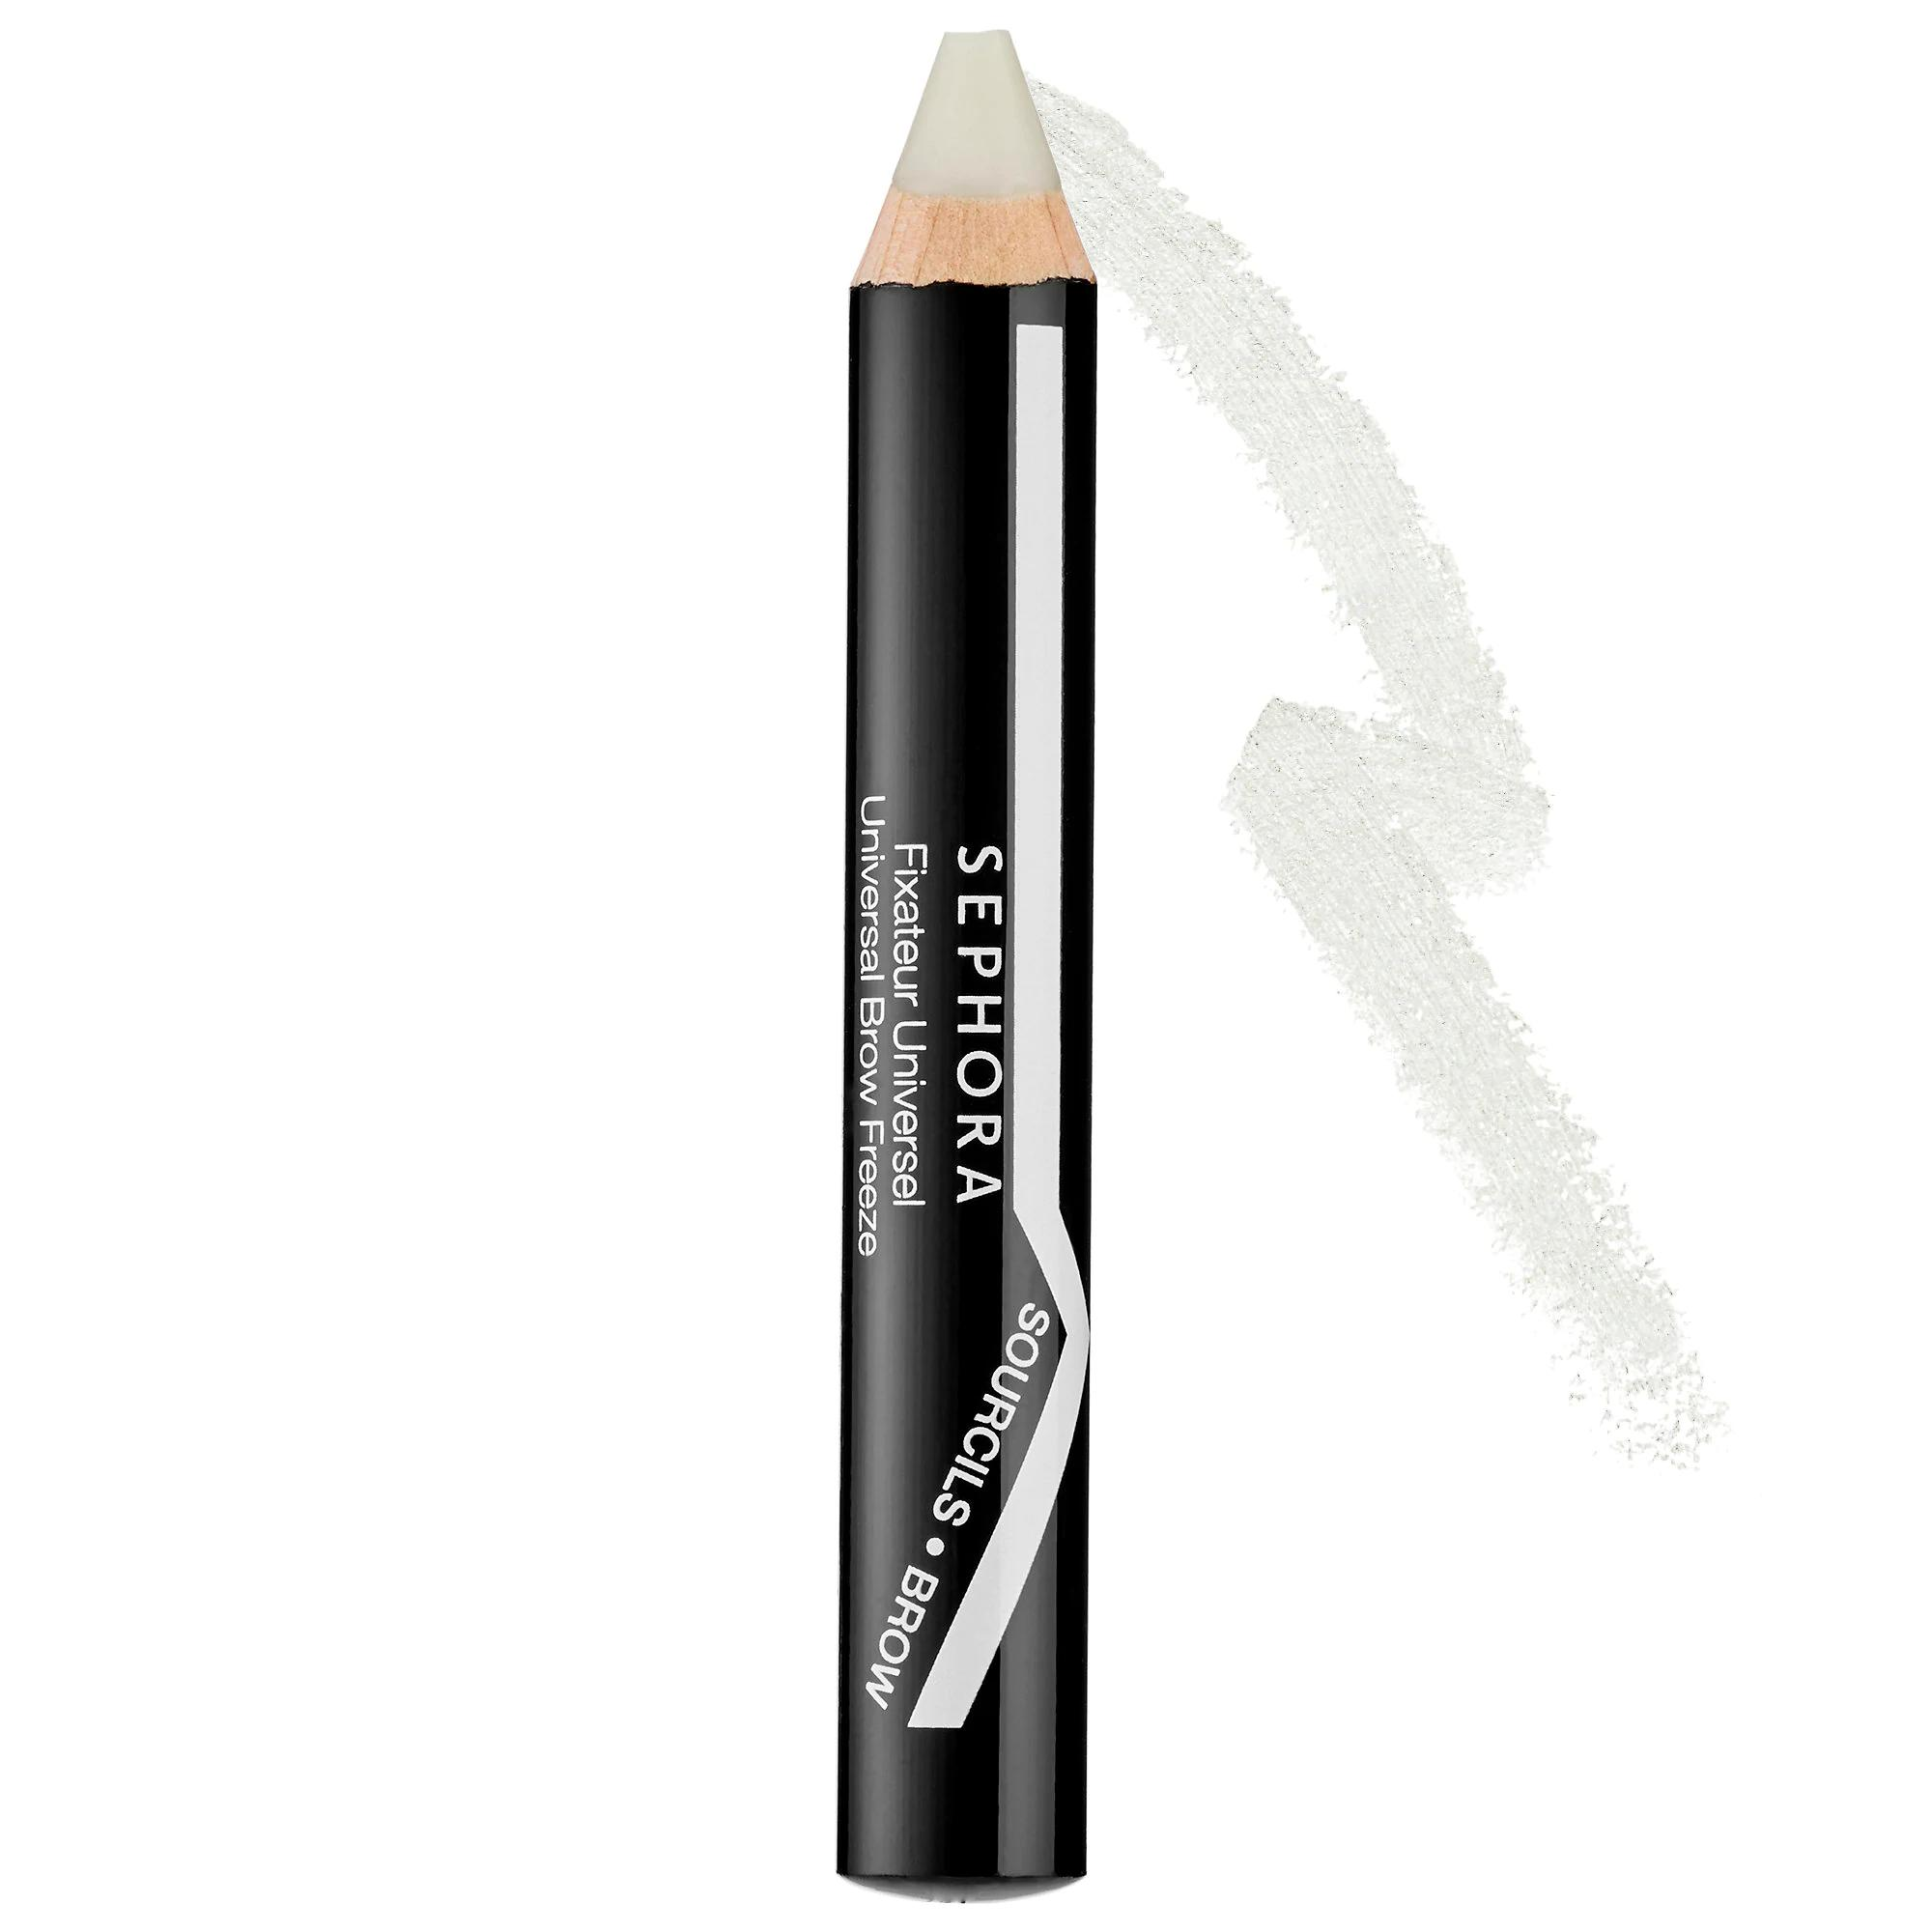 Sephora Universal Brow Freeze Clear